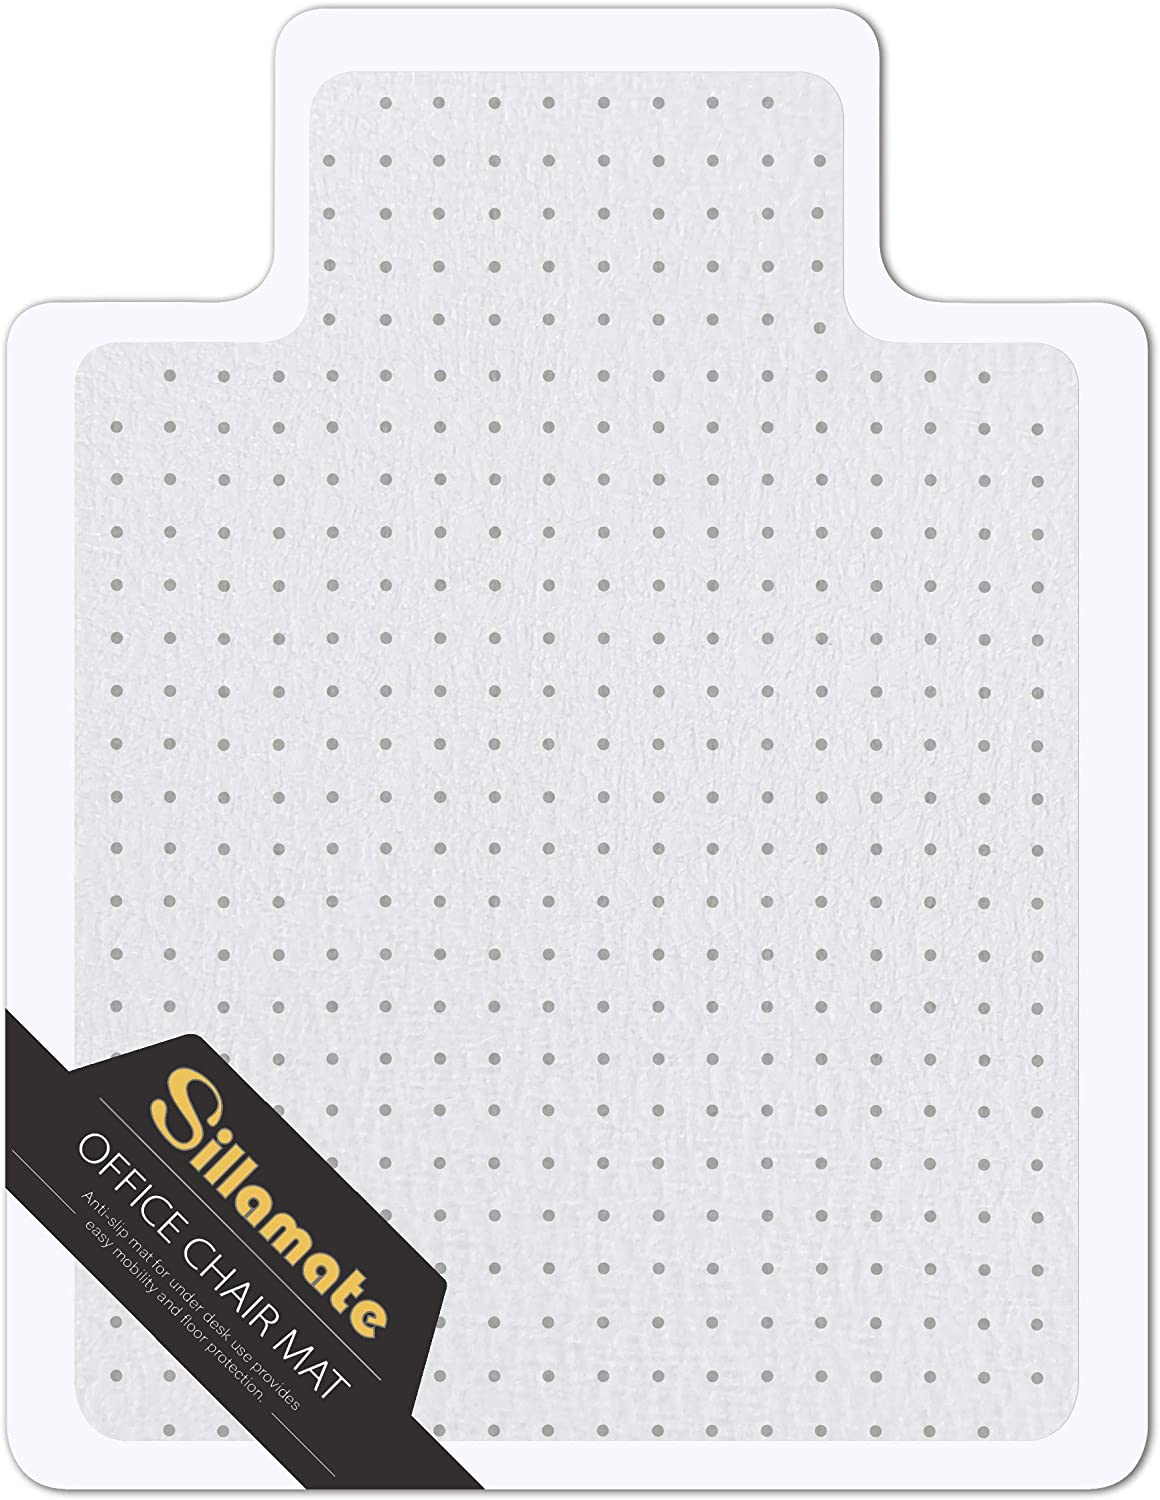 Sillamate Office Chair Mat for Carpeted Floors, Heavy Duty Floor Mat,Eco-Friendly Series Studded Carpet Desk Chair Mats-36'' x 48'' (36 inches X 48 inches)